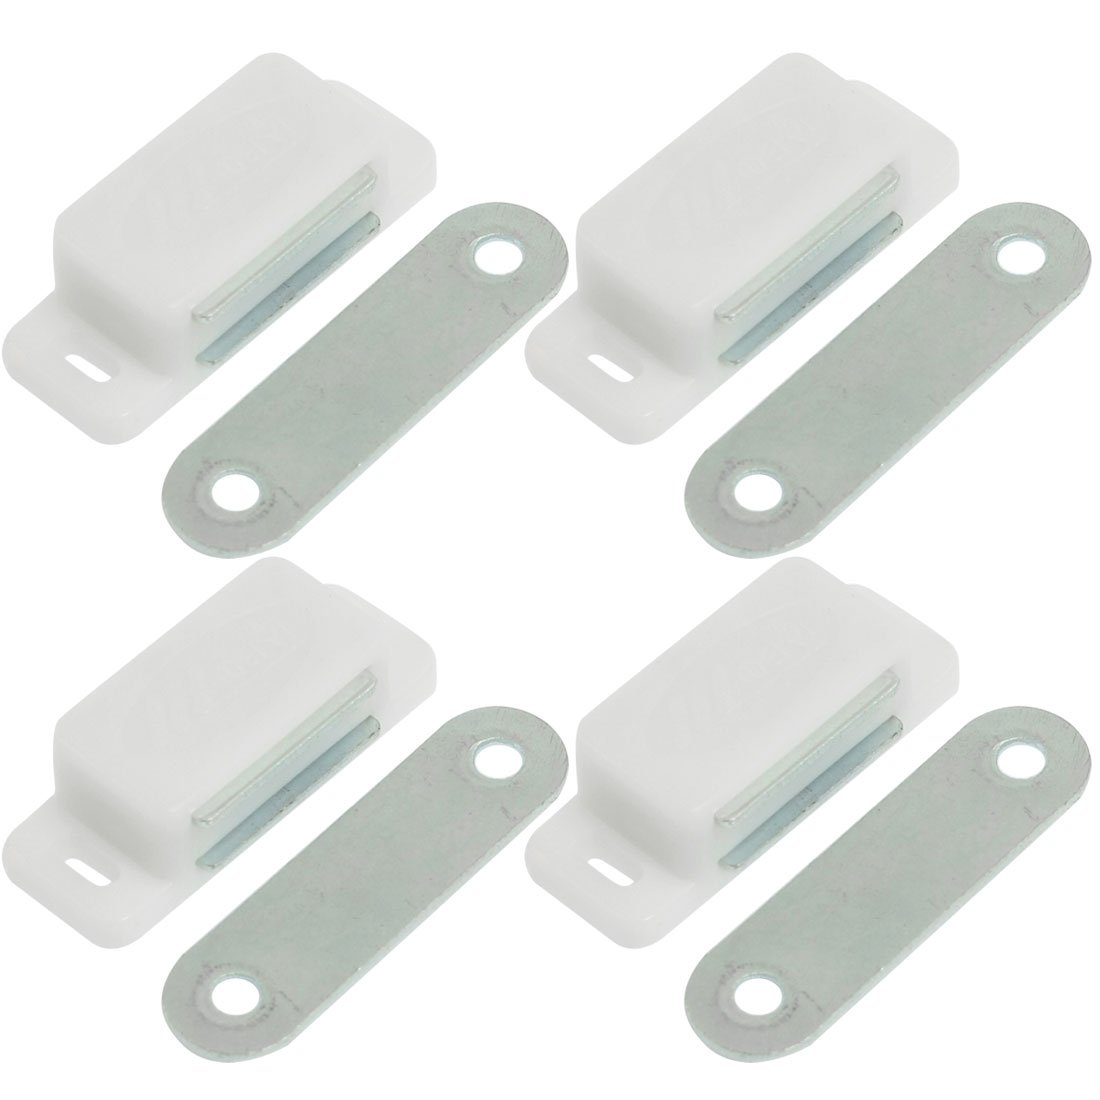 4 Pcs Plastic Shell Magnetic Metal Catch Latch Plate for